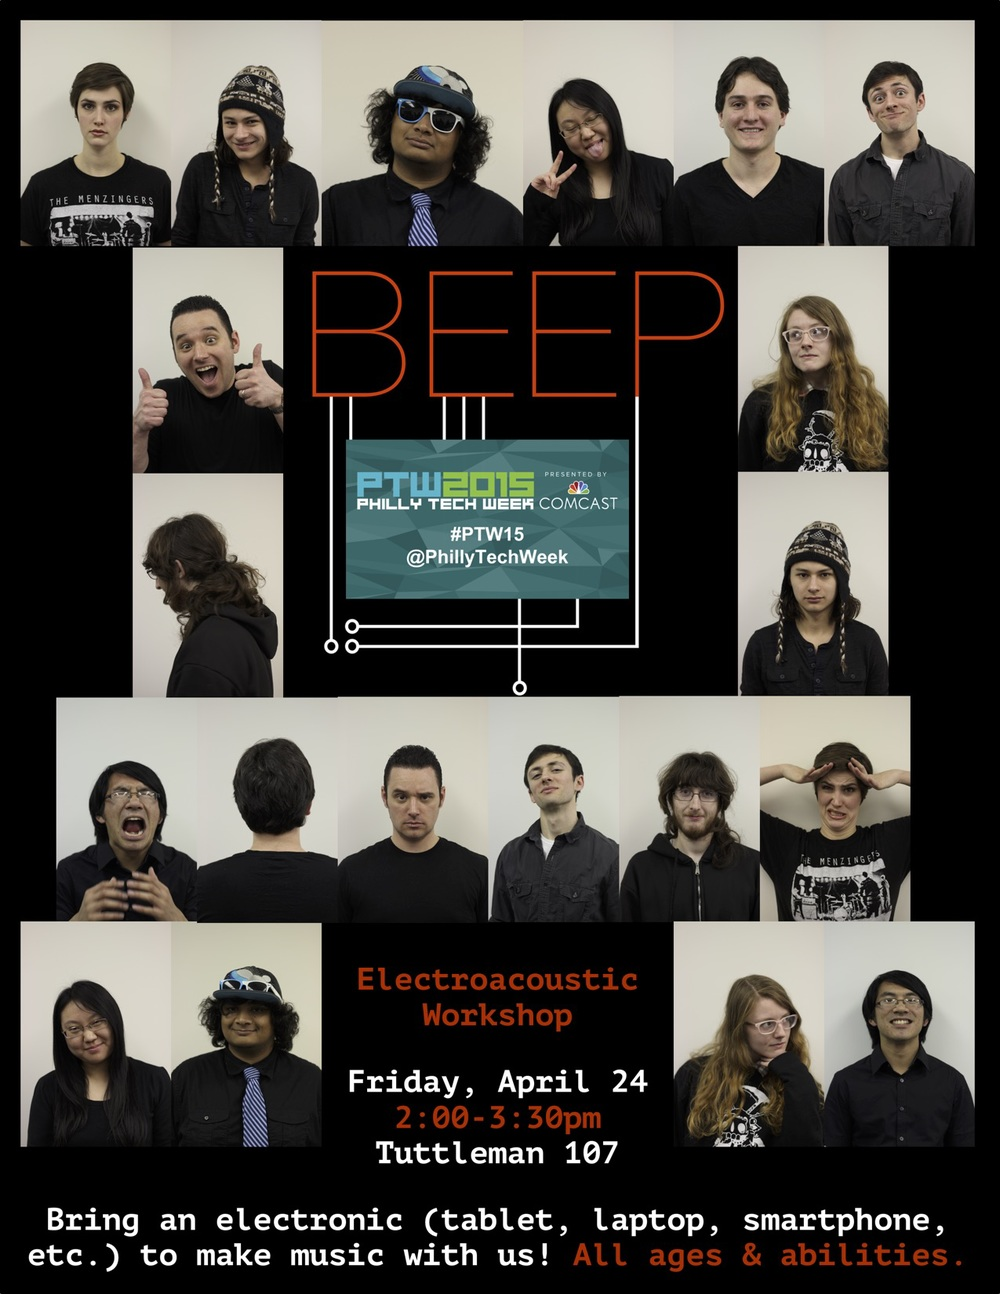 BEEP flyer for TechWeek.jpg